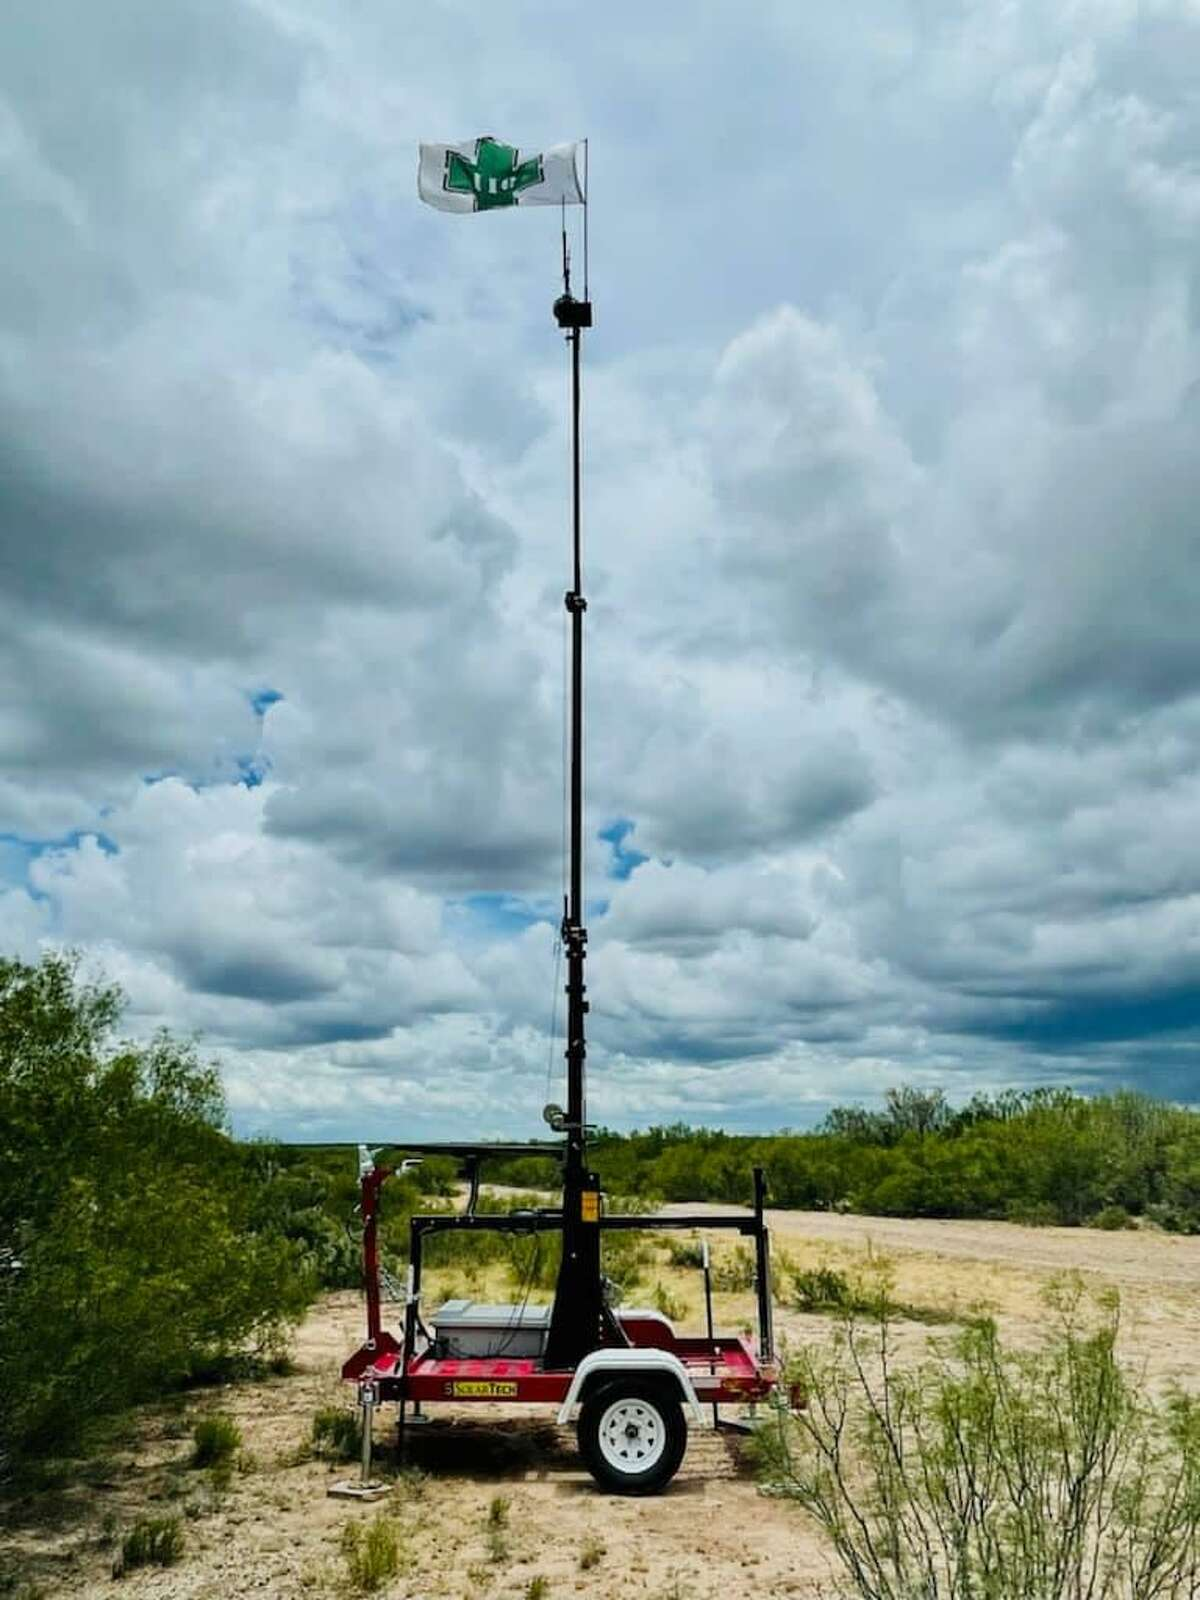 The U.S. Border Patrol stated that Laredo and Hebbronville received new Mobile Rescue Beacons to help agents find individuals who are lost along remote parts of the border.